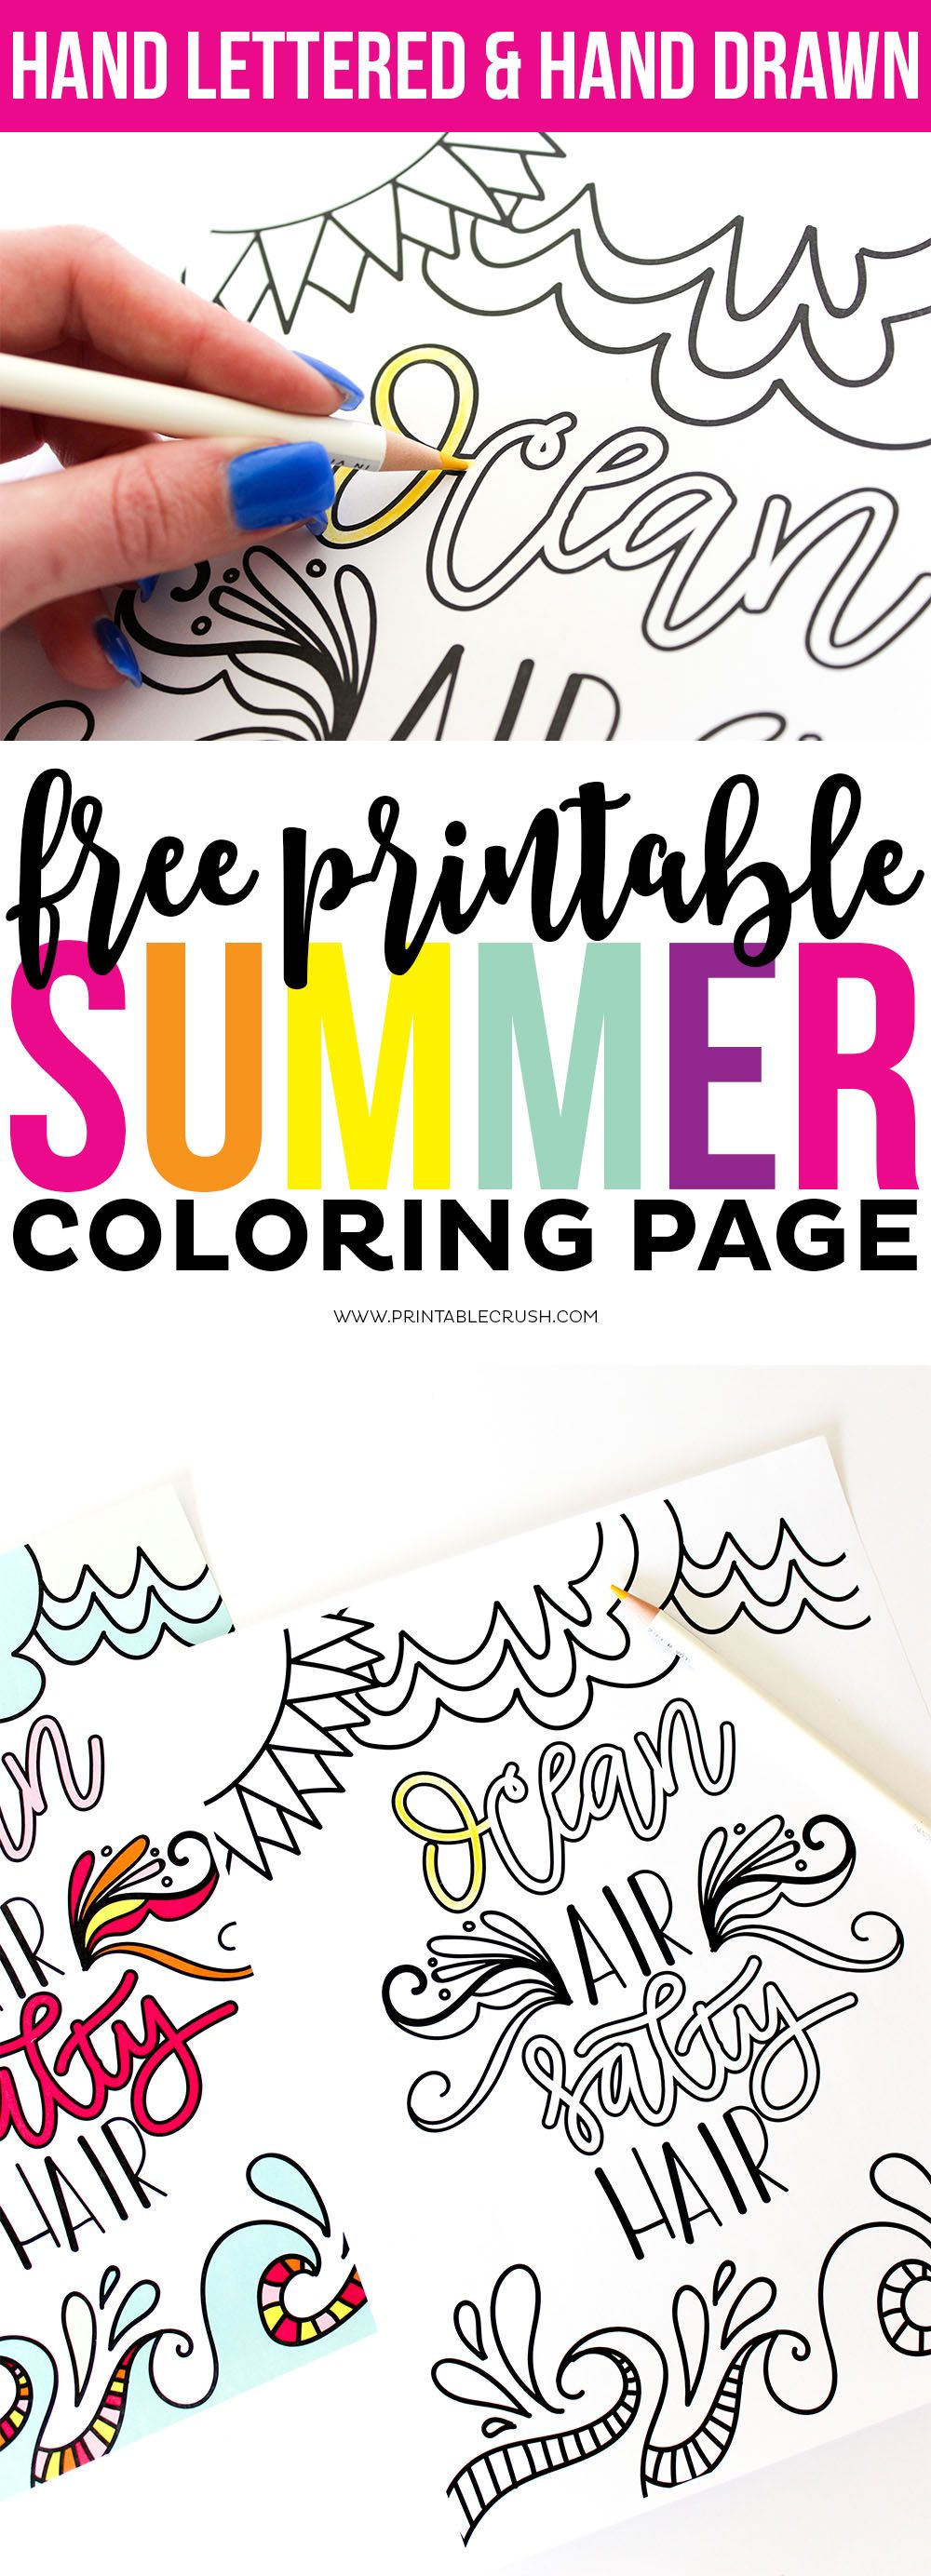 Download This Hand Lettered Free Printable Summer Coloring